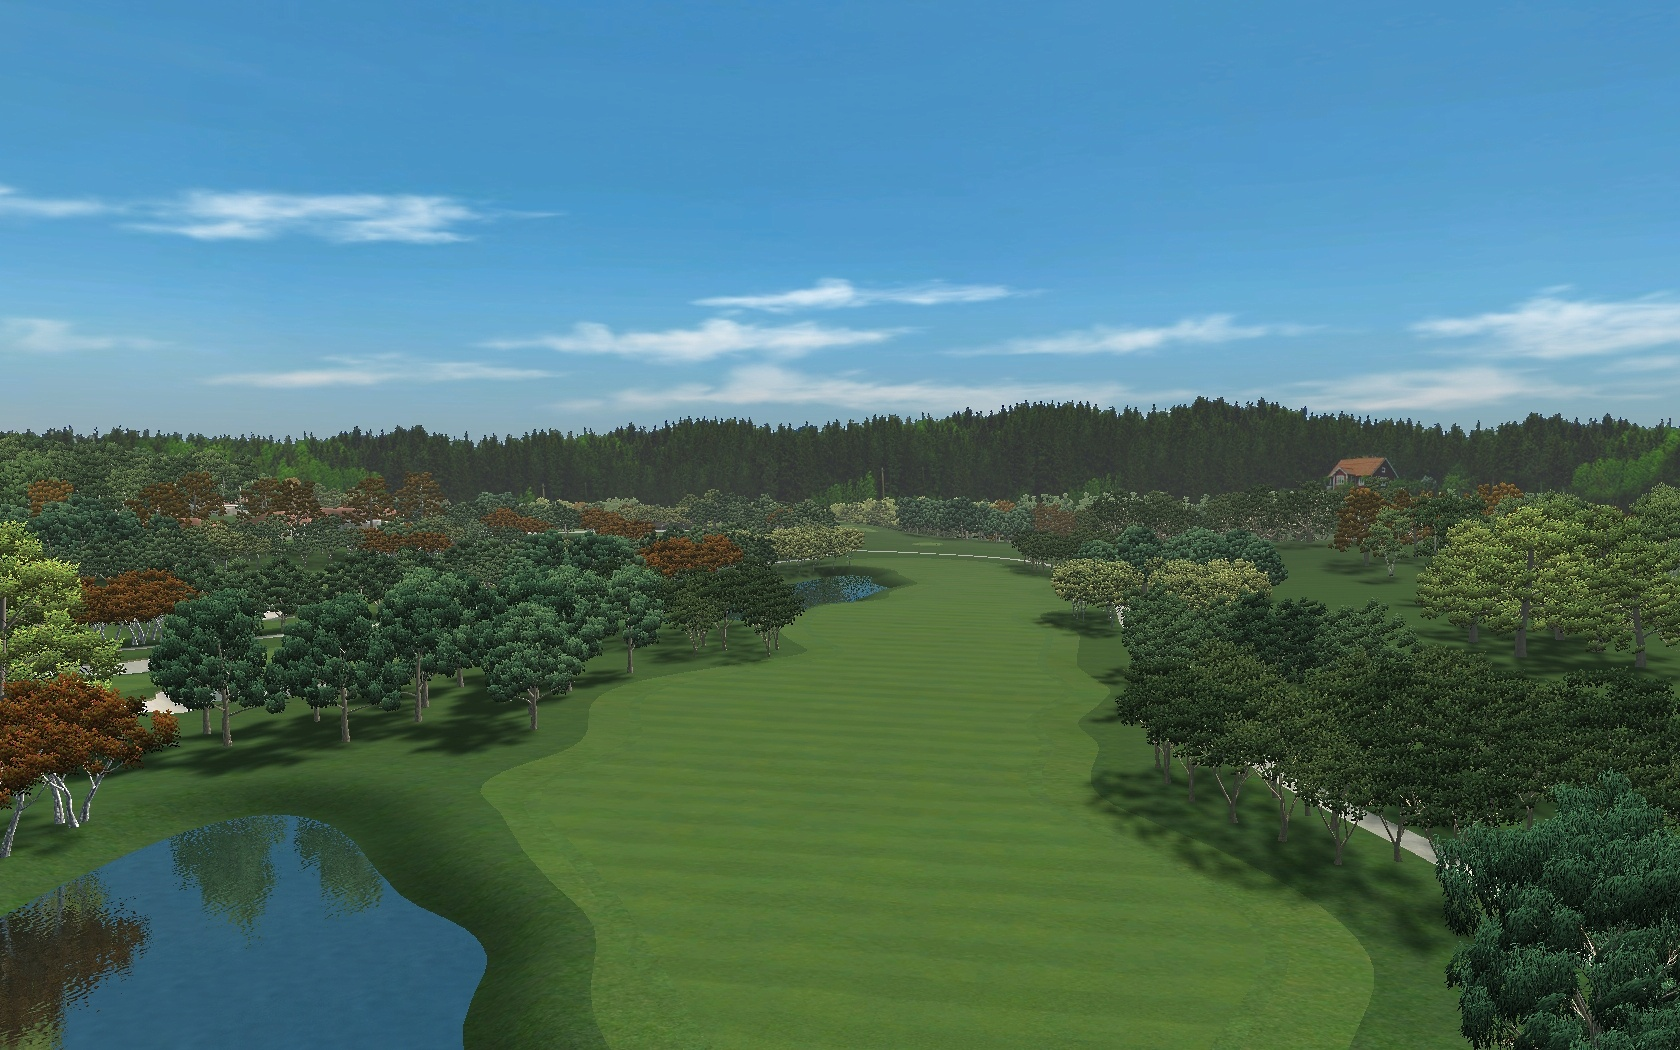 Picture of Ipswich Country Club - click to view original size